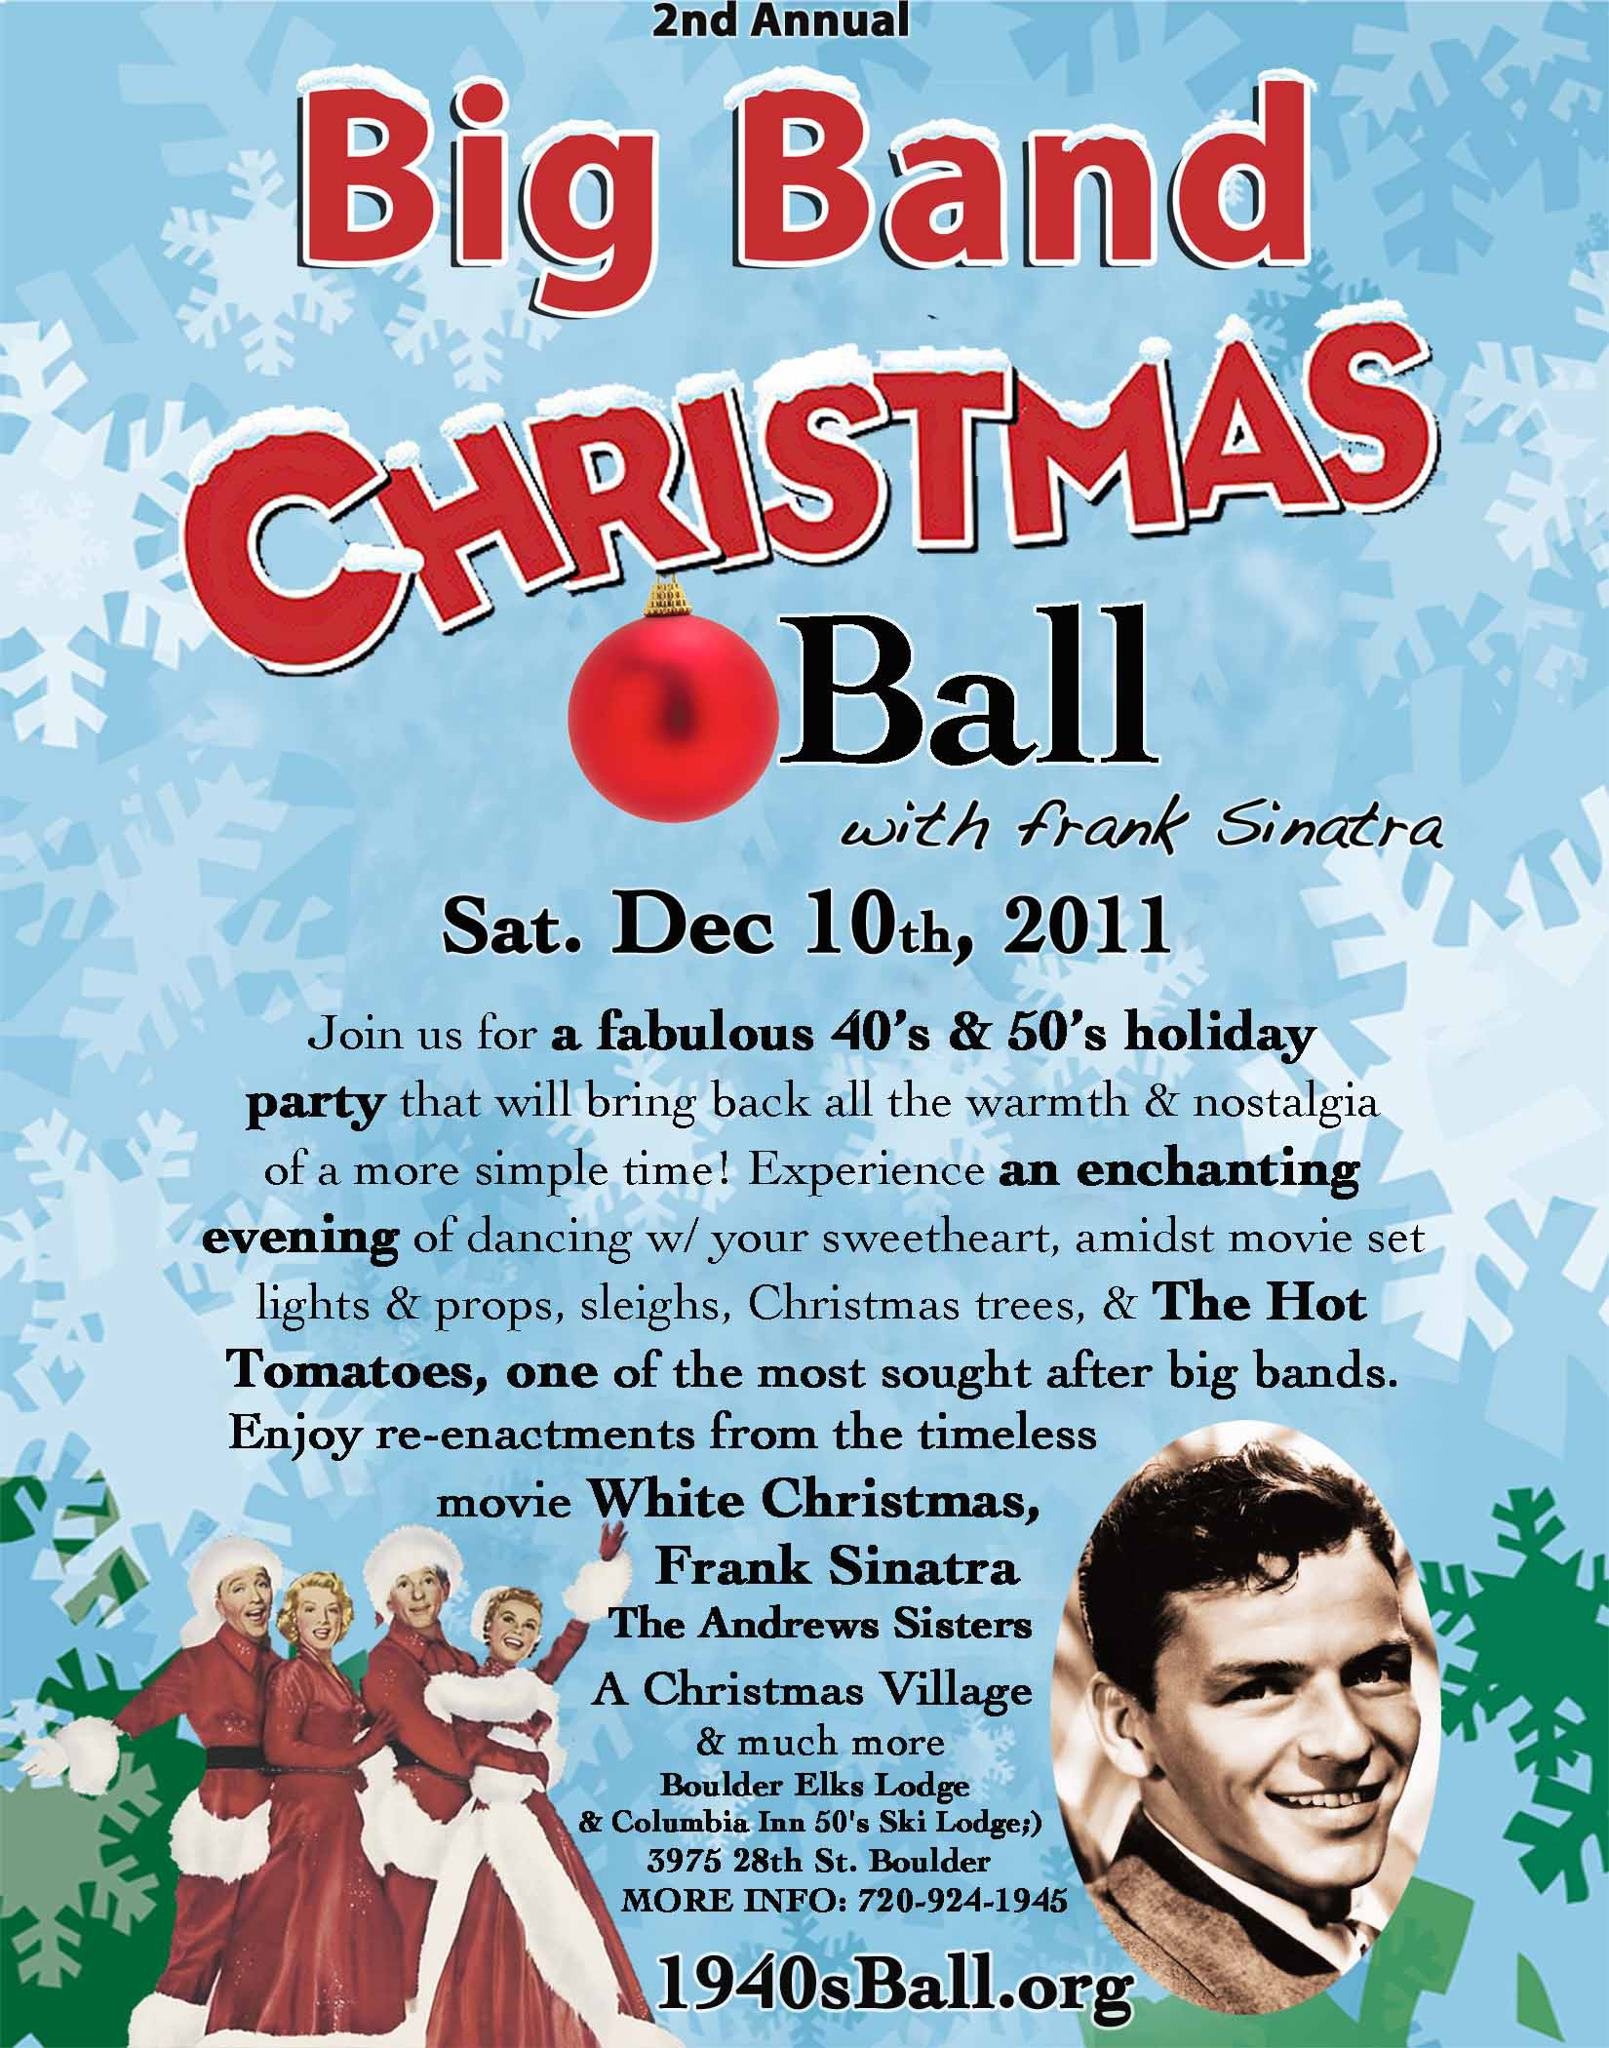 Big Band Christmas Ball poster